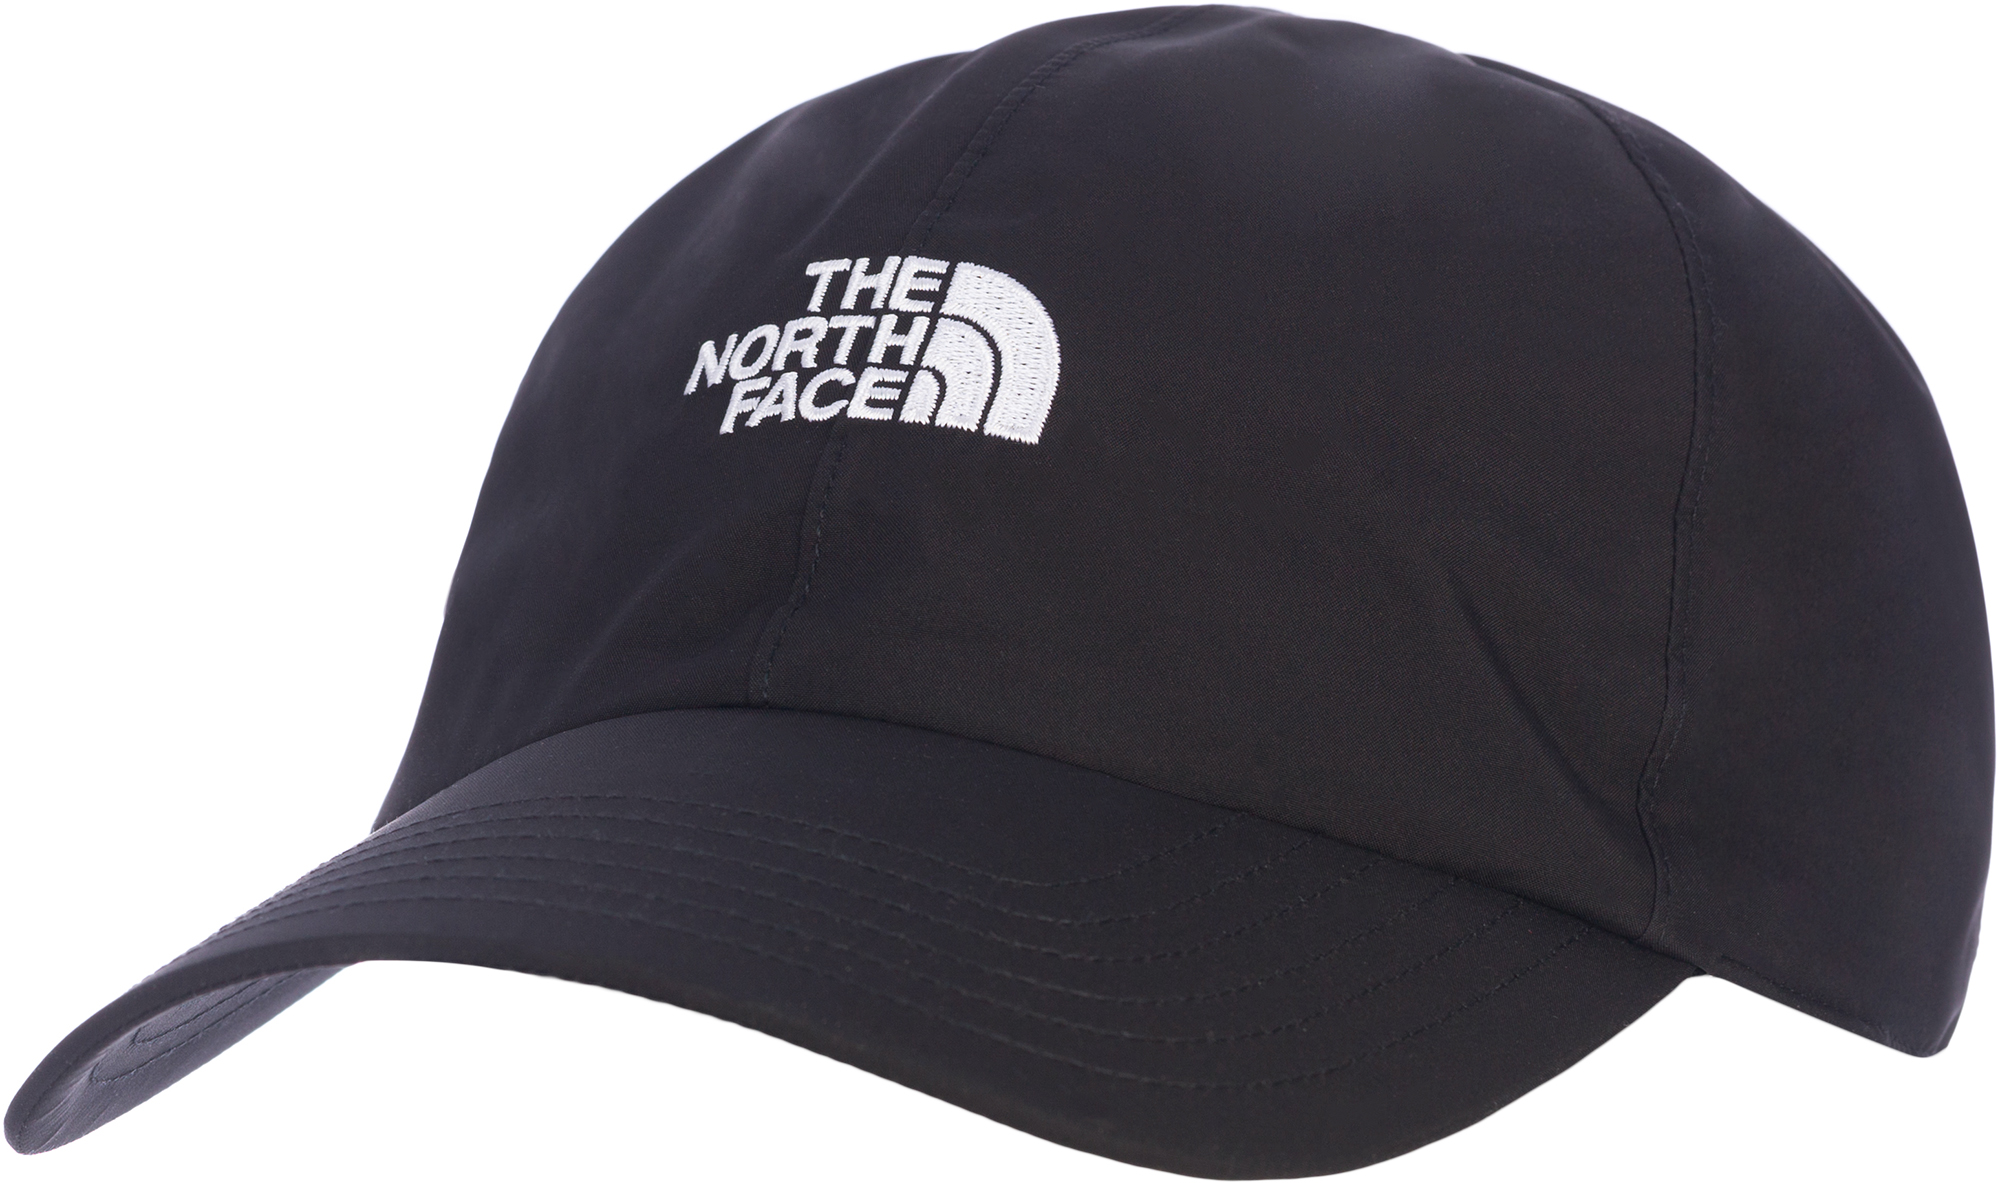 The North Face Бейсболка The North Face Logo Gore, размер 59-61 цена